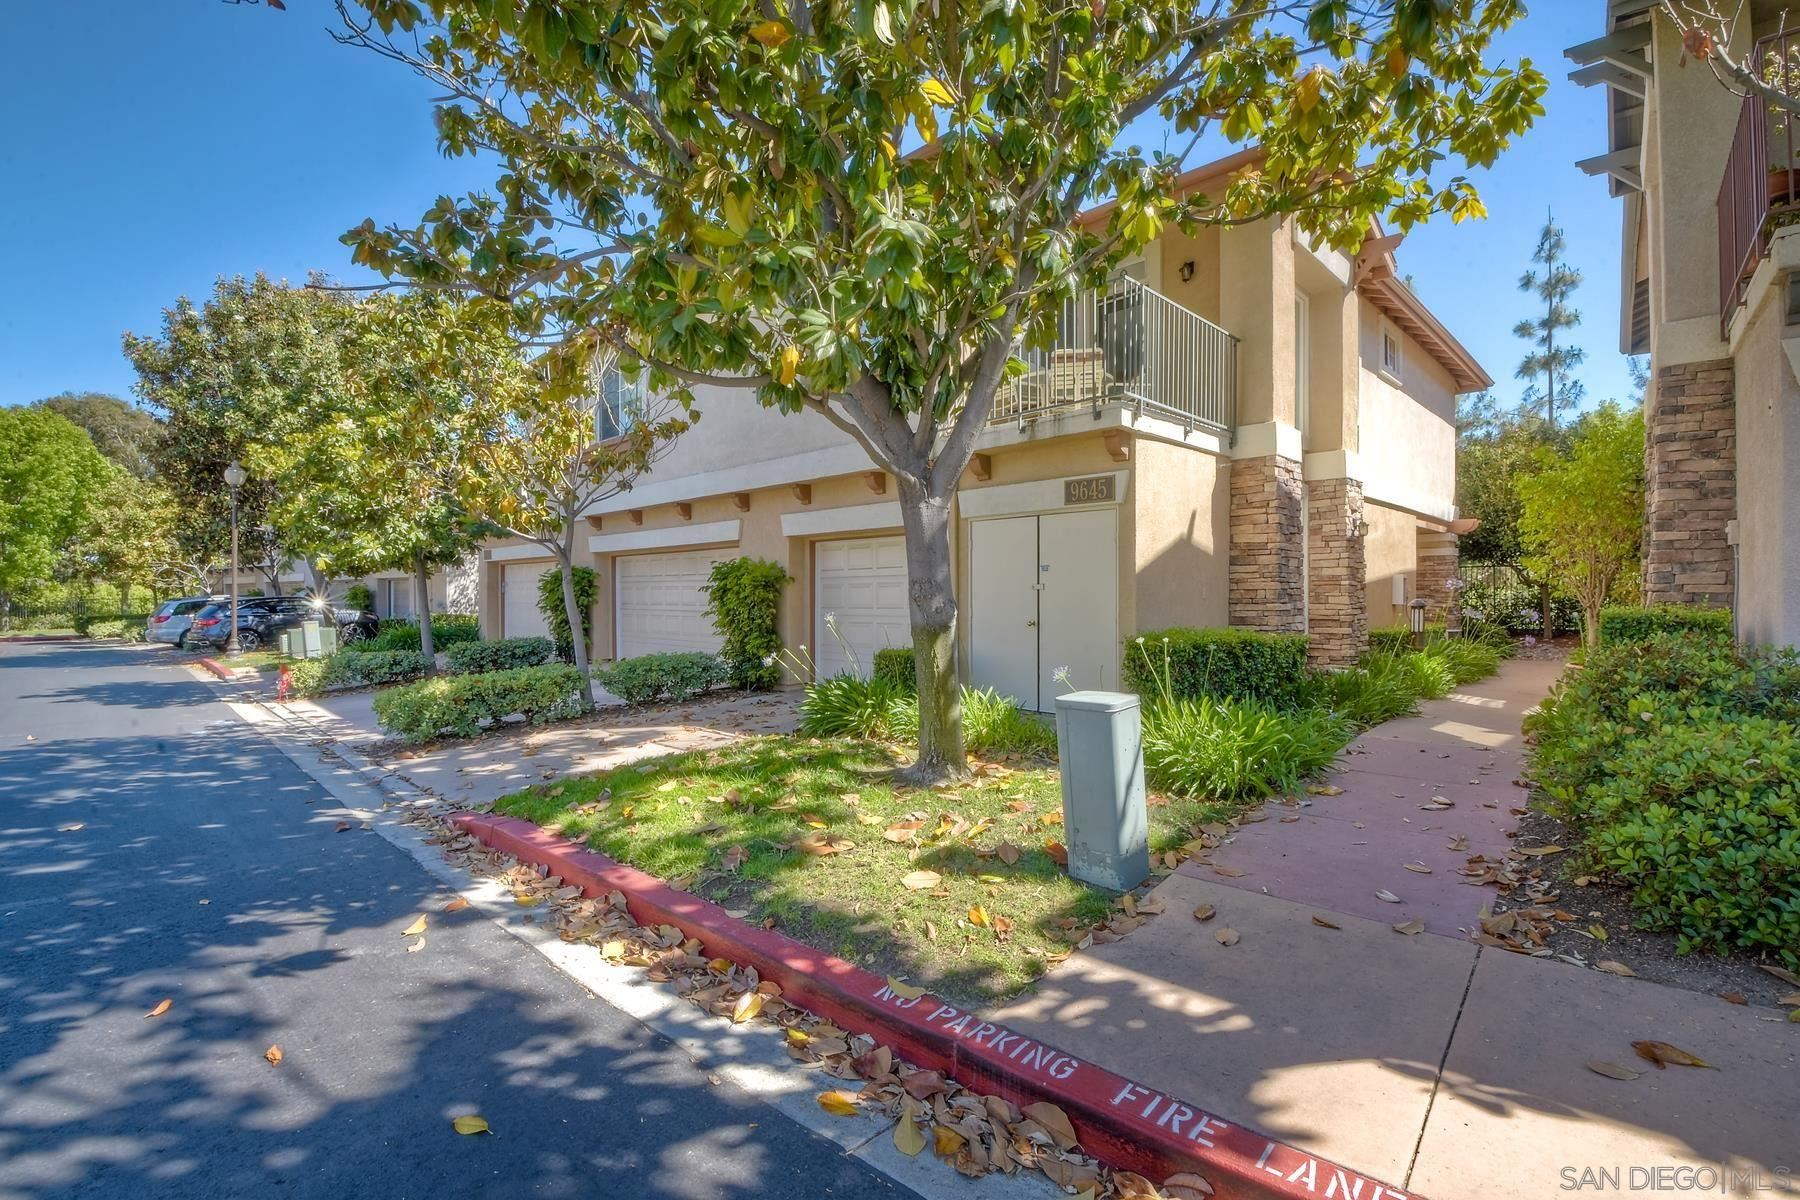 Photo of 9645 West Canyon Terrace #Unit 2, San Diego, CA 92123 (MLS # 210016294)